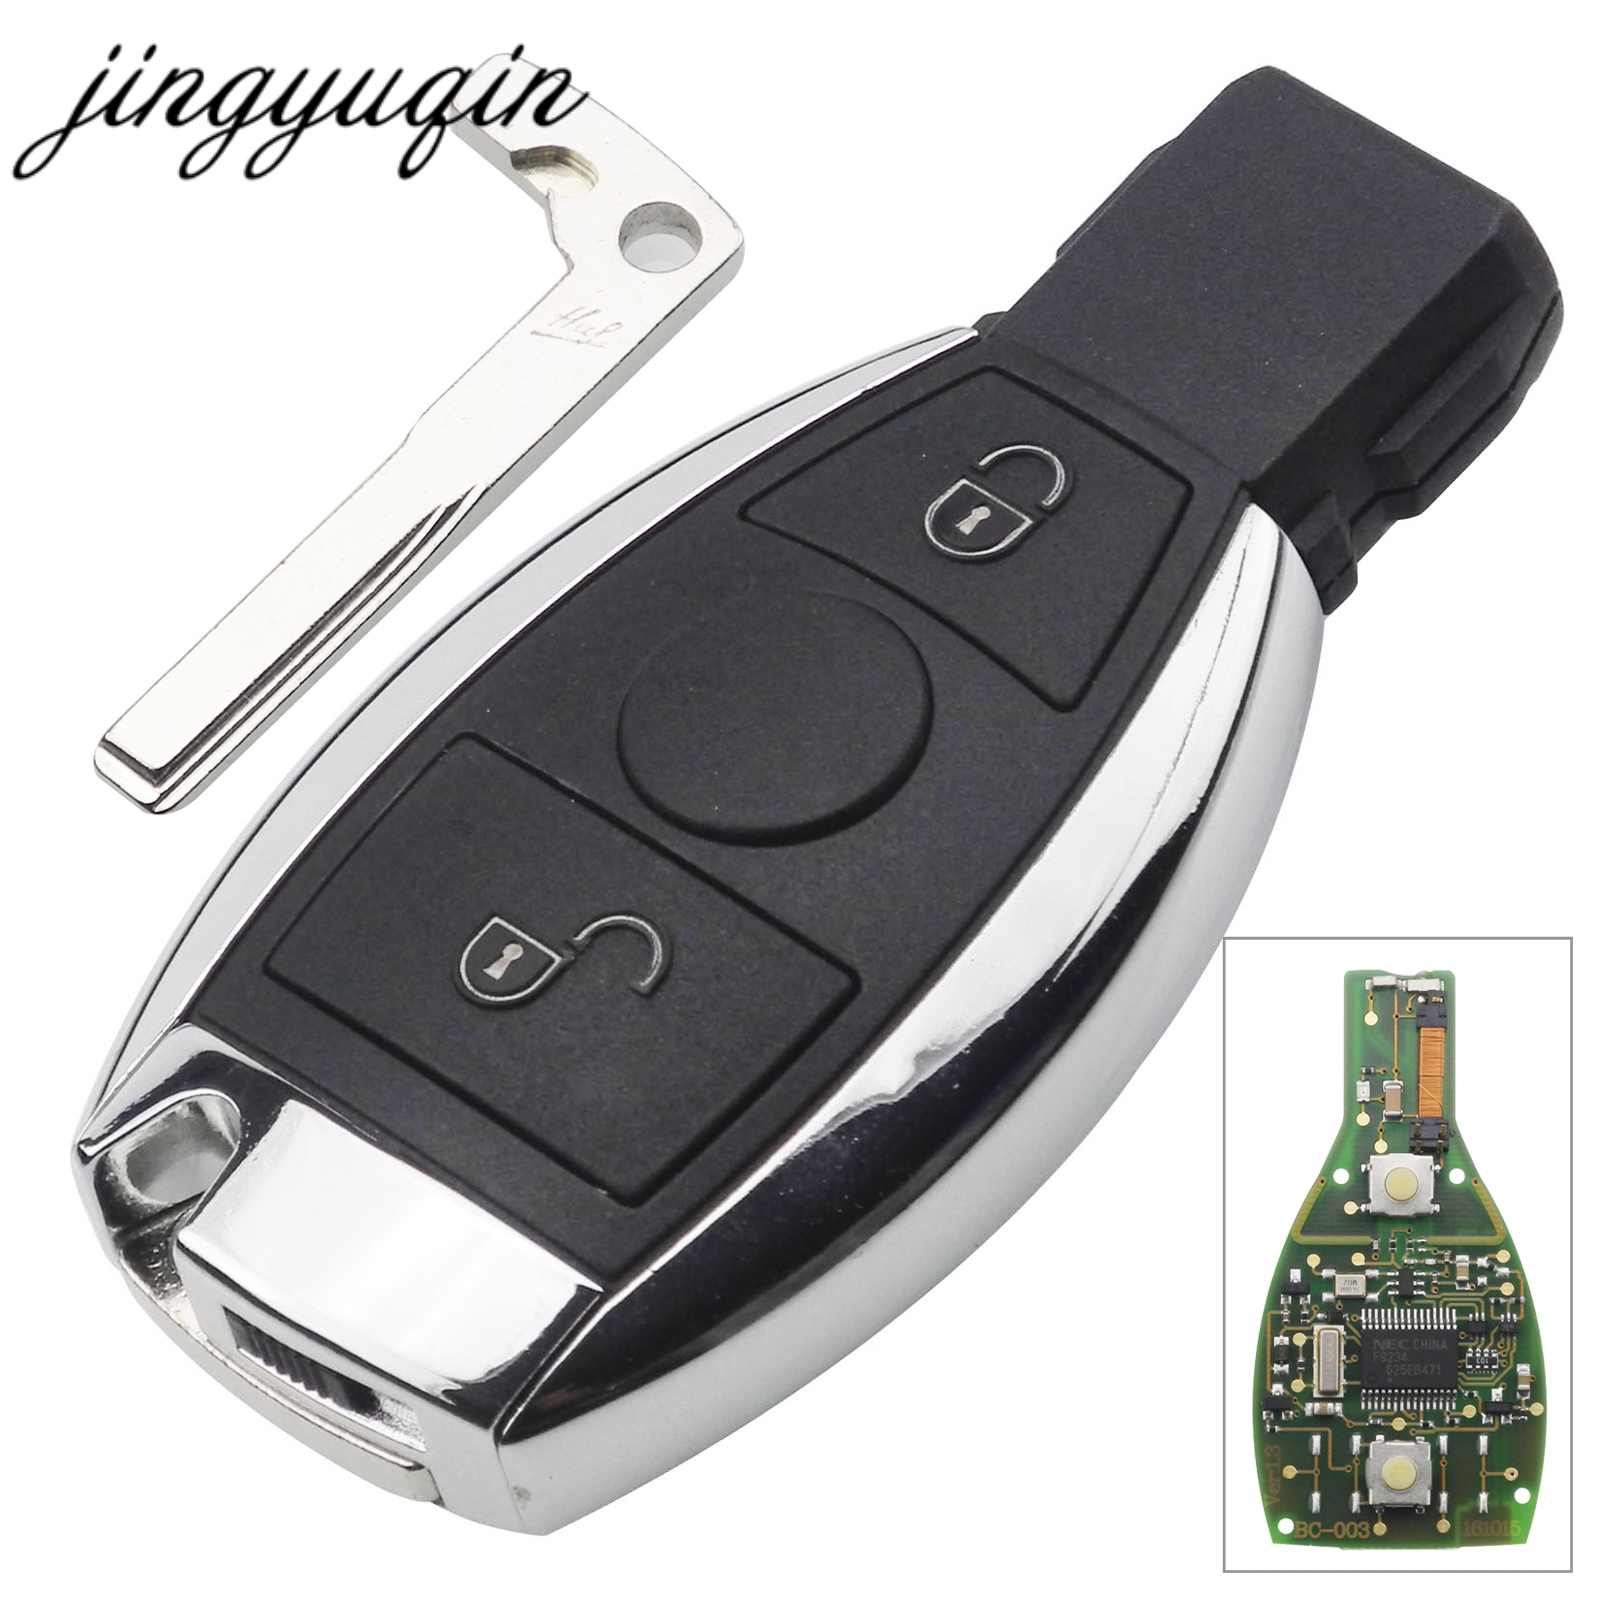 jingyuqin BGA Style 2 Buttons Keyless Entry Remote Car Key 433MHz for MB Mercedes for BENZ E S After 2000 Key Fob Replacementjingyuqin BGA Style 2 Buttons Keyless Entry Remote Car Key 433MHz for MB Mercedes for BENZ E S After 2000 Key Fob Replacement